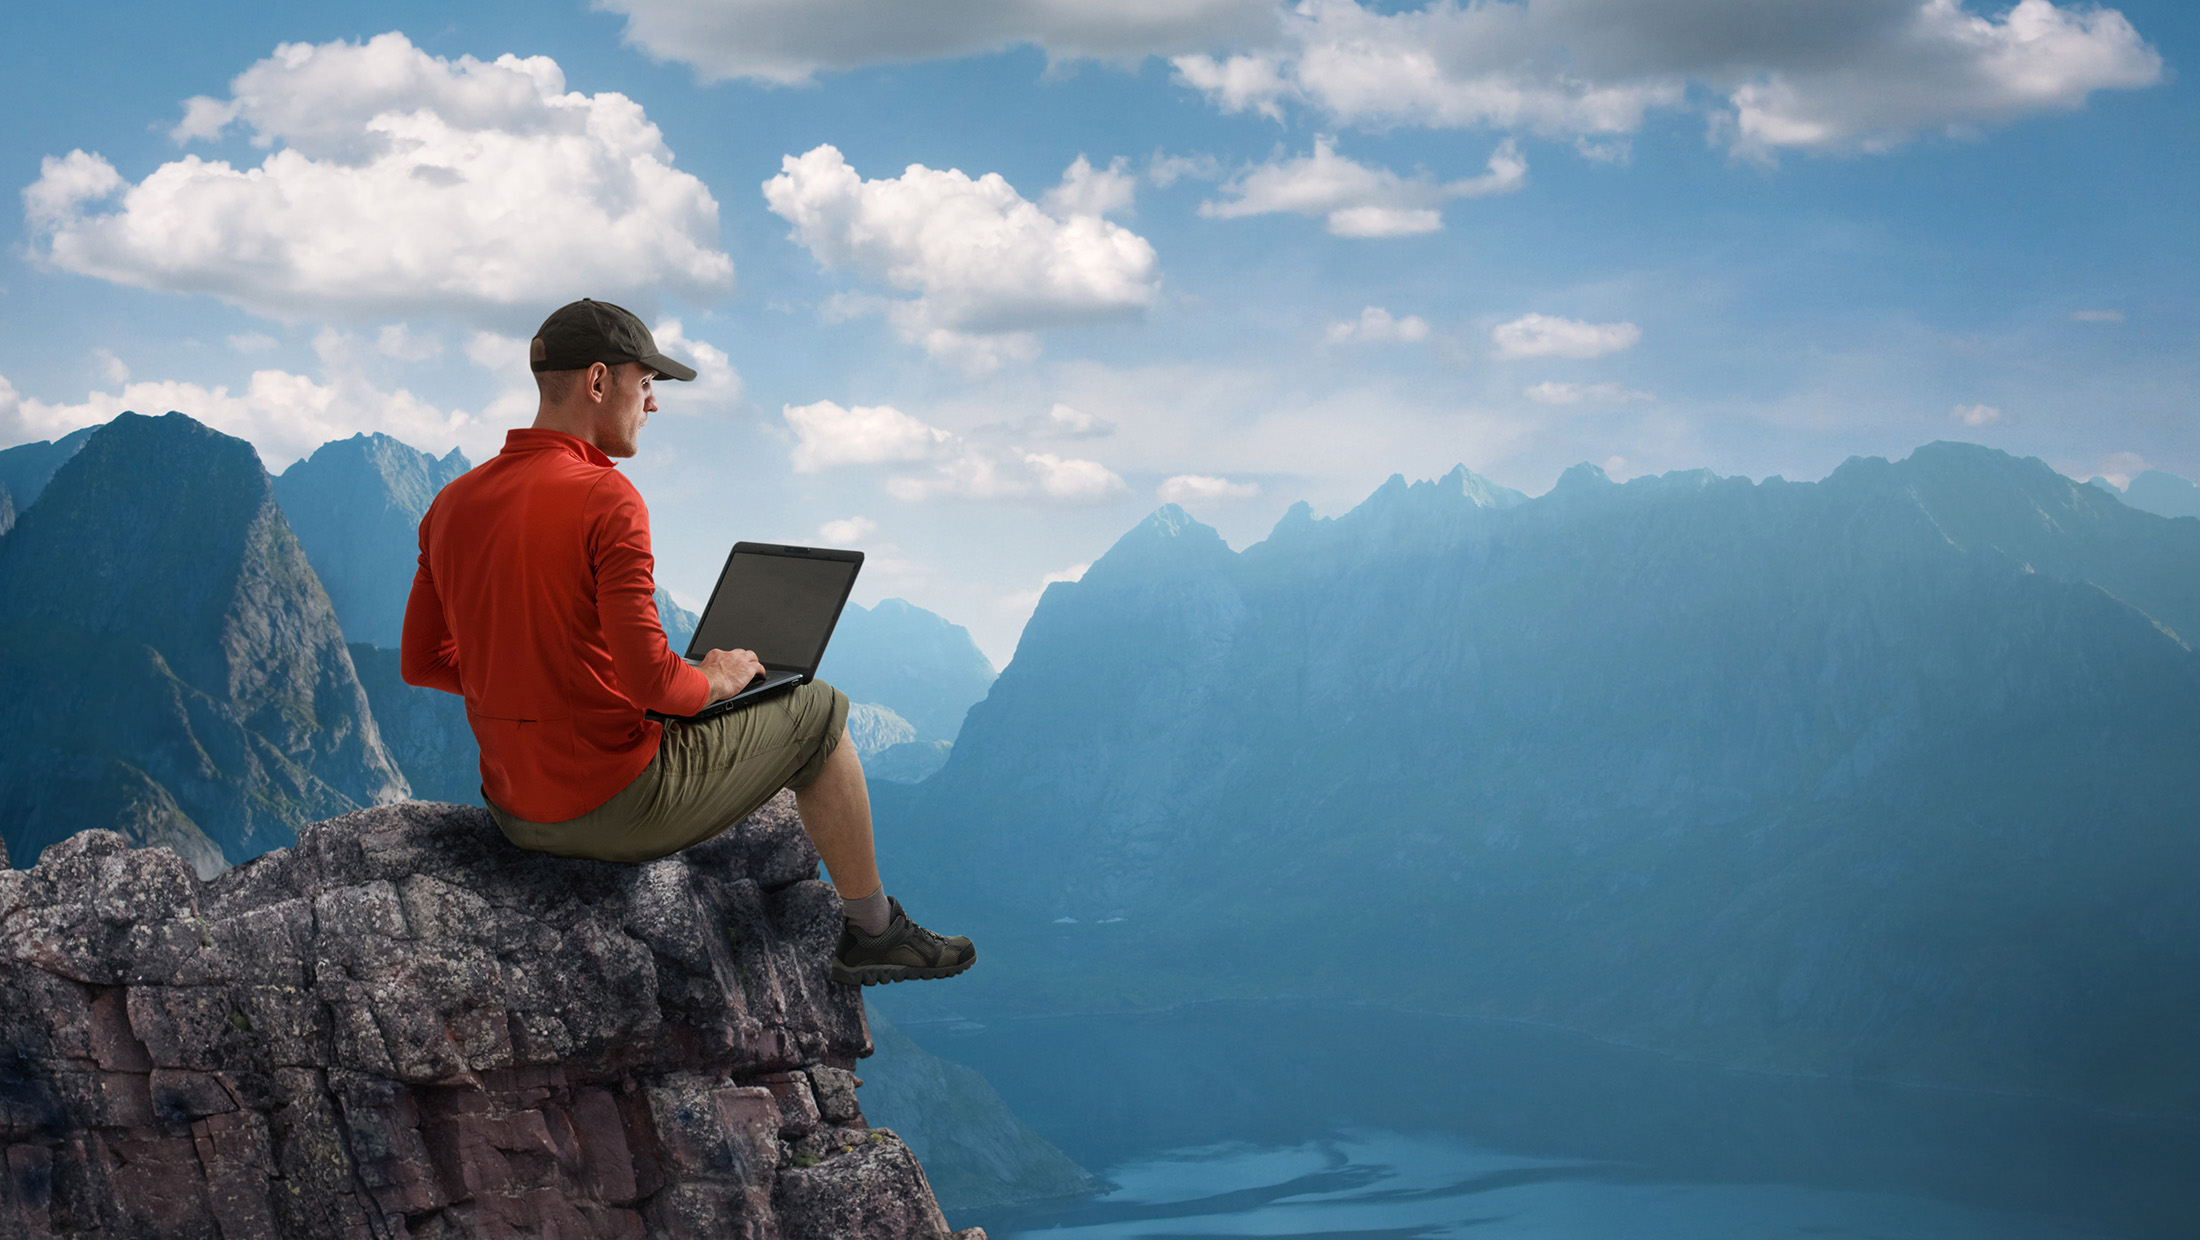 Command your business from anywhere